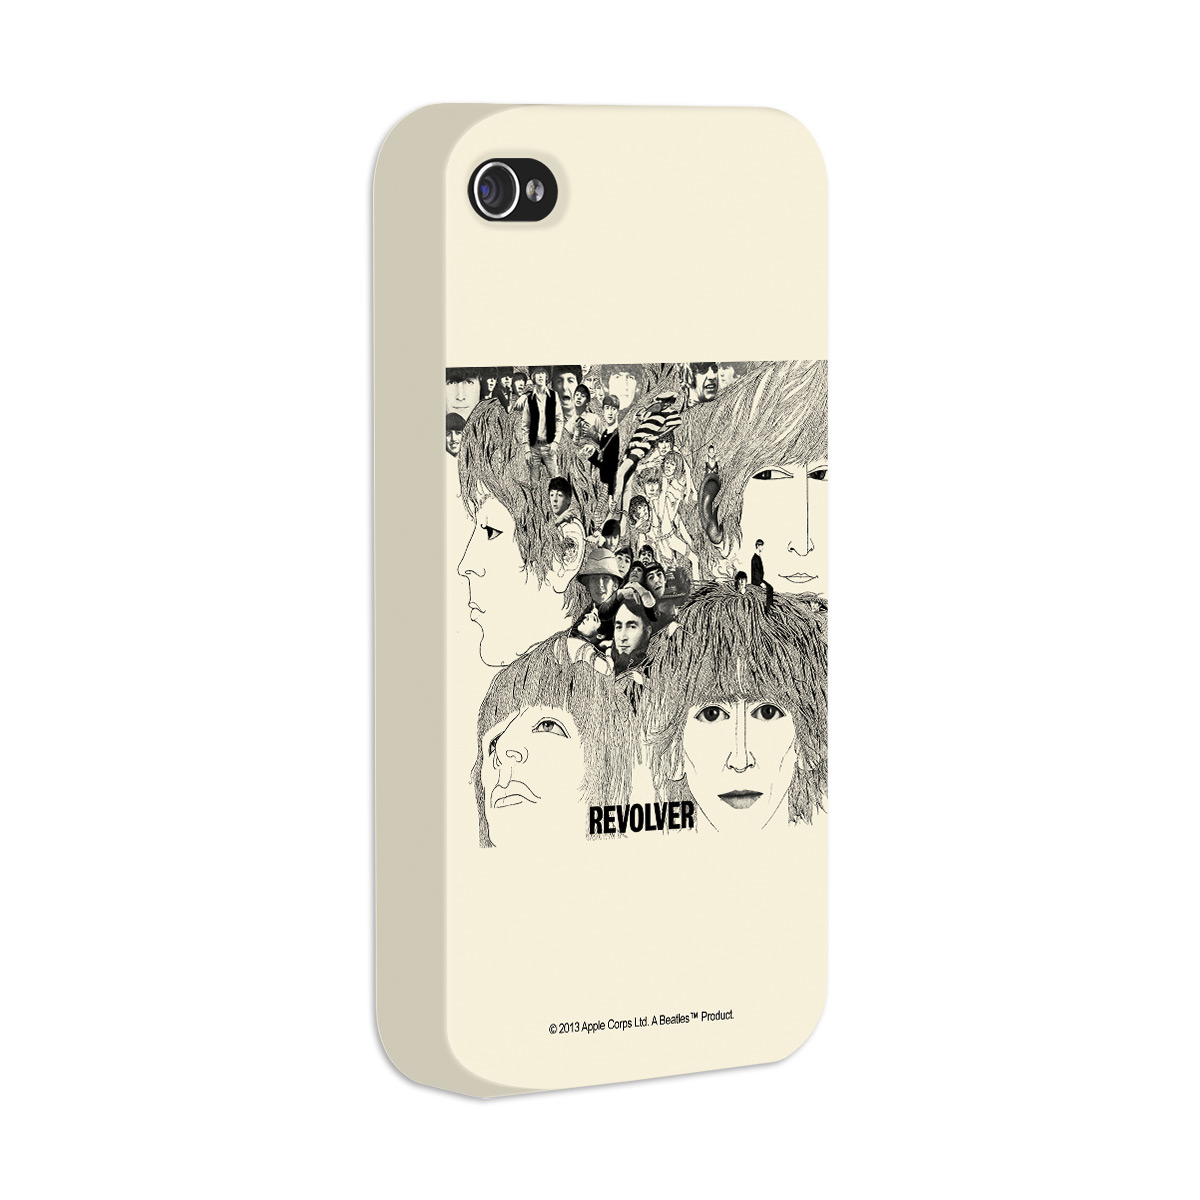 Capa de iPhone 4/4s The Beatles Revolver